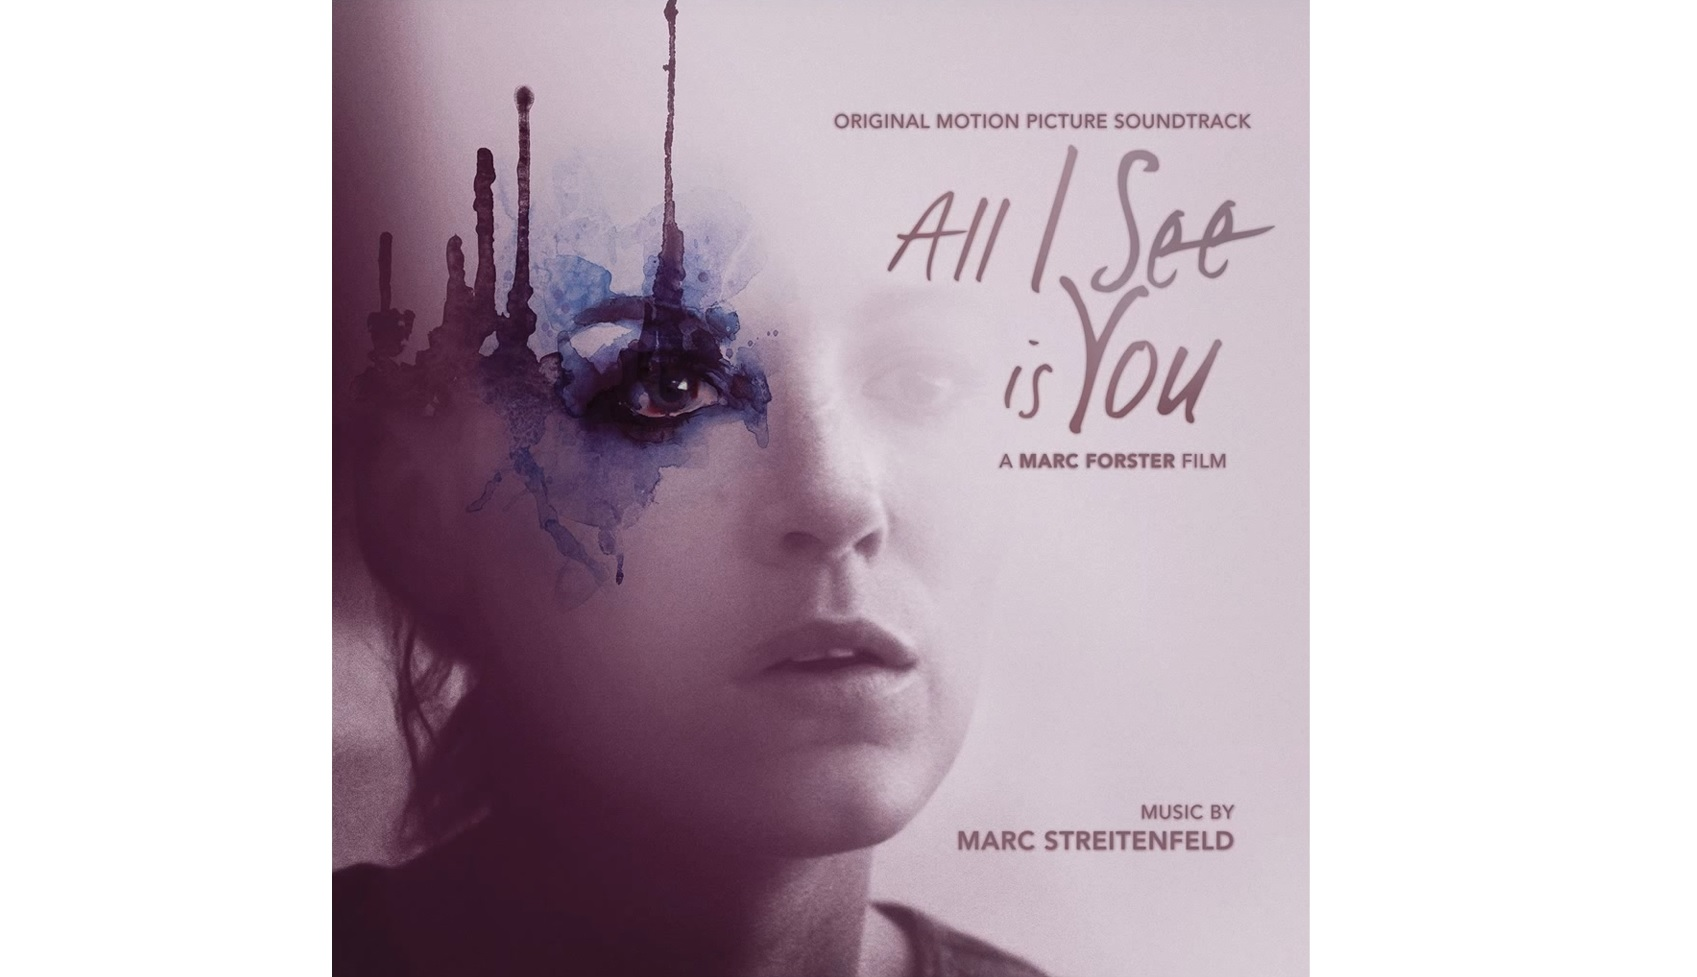 Dame Tus Ojos (All I See is You) – Soundtrack, Tráiler